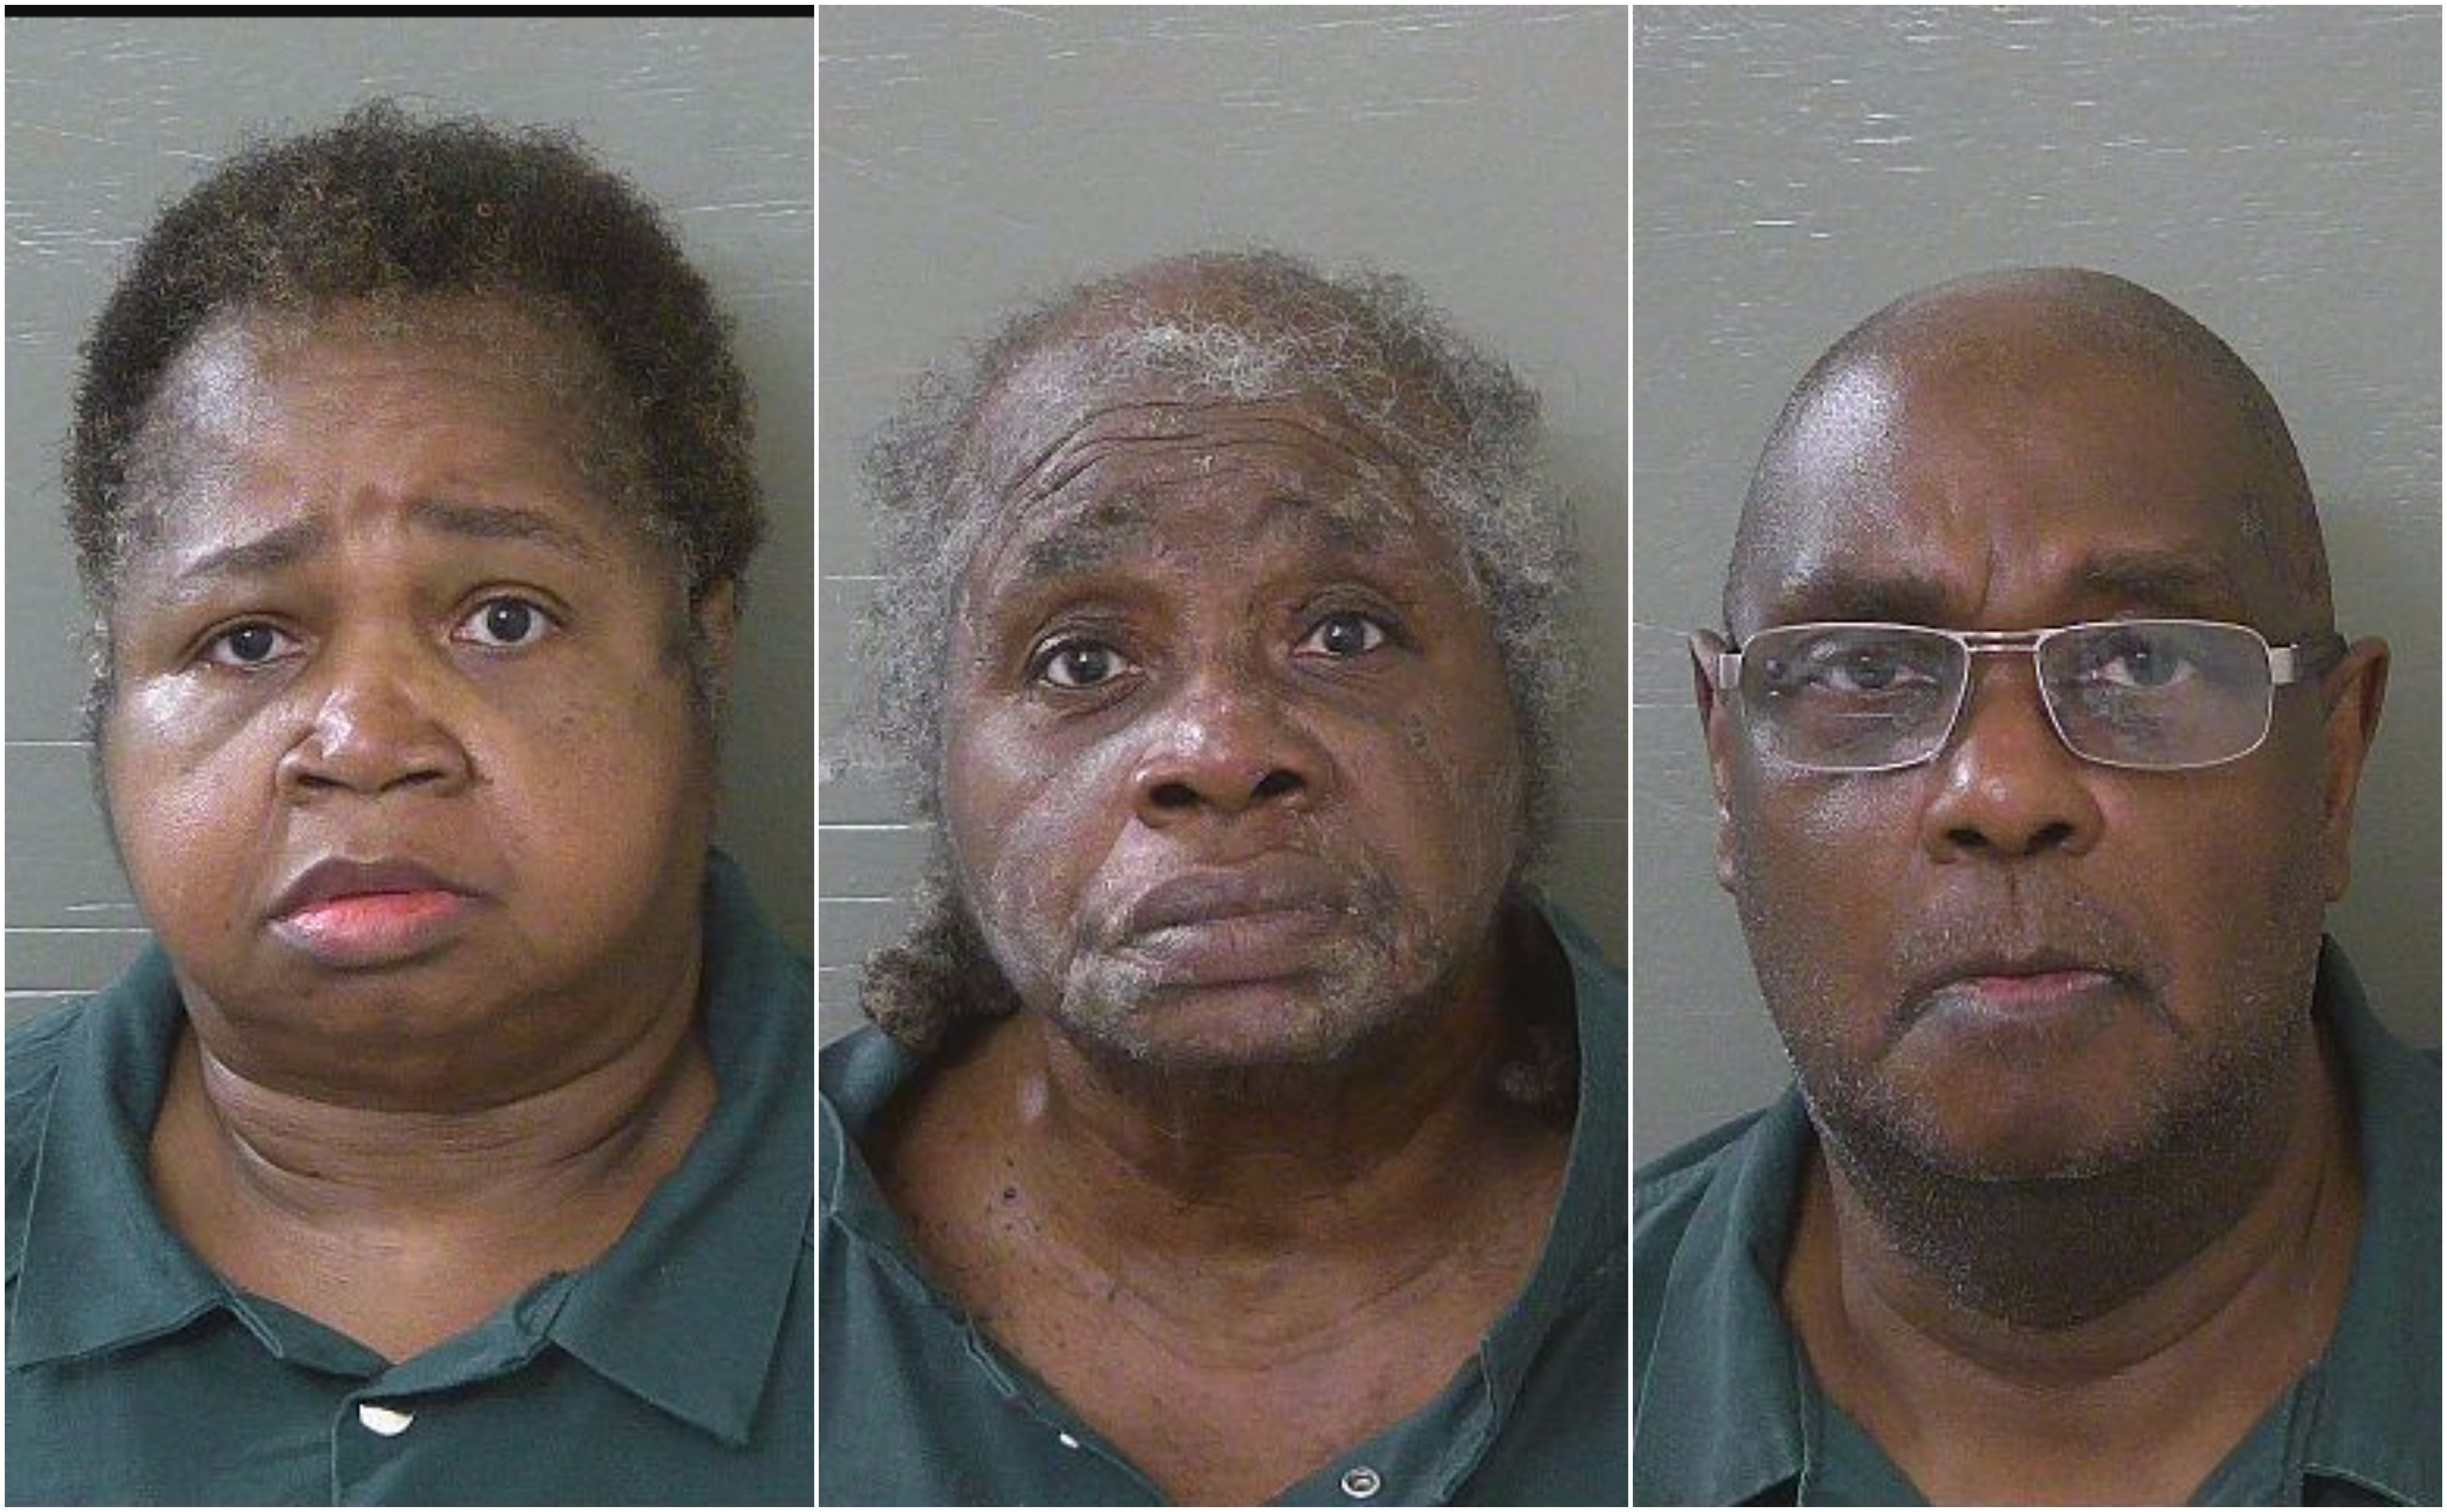 Photo: (L-R) Veronica Posey, Grace Smith, James Smith Source: Escambia County Jail